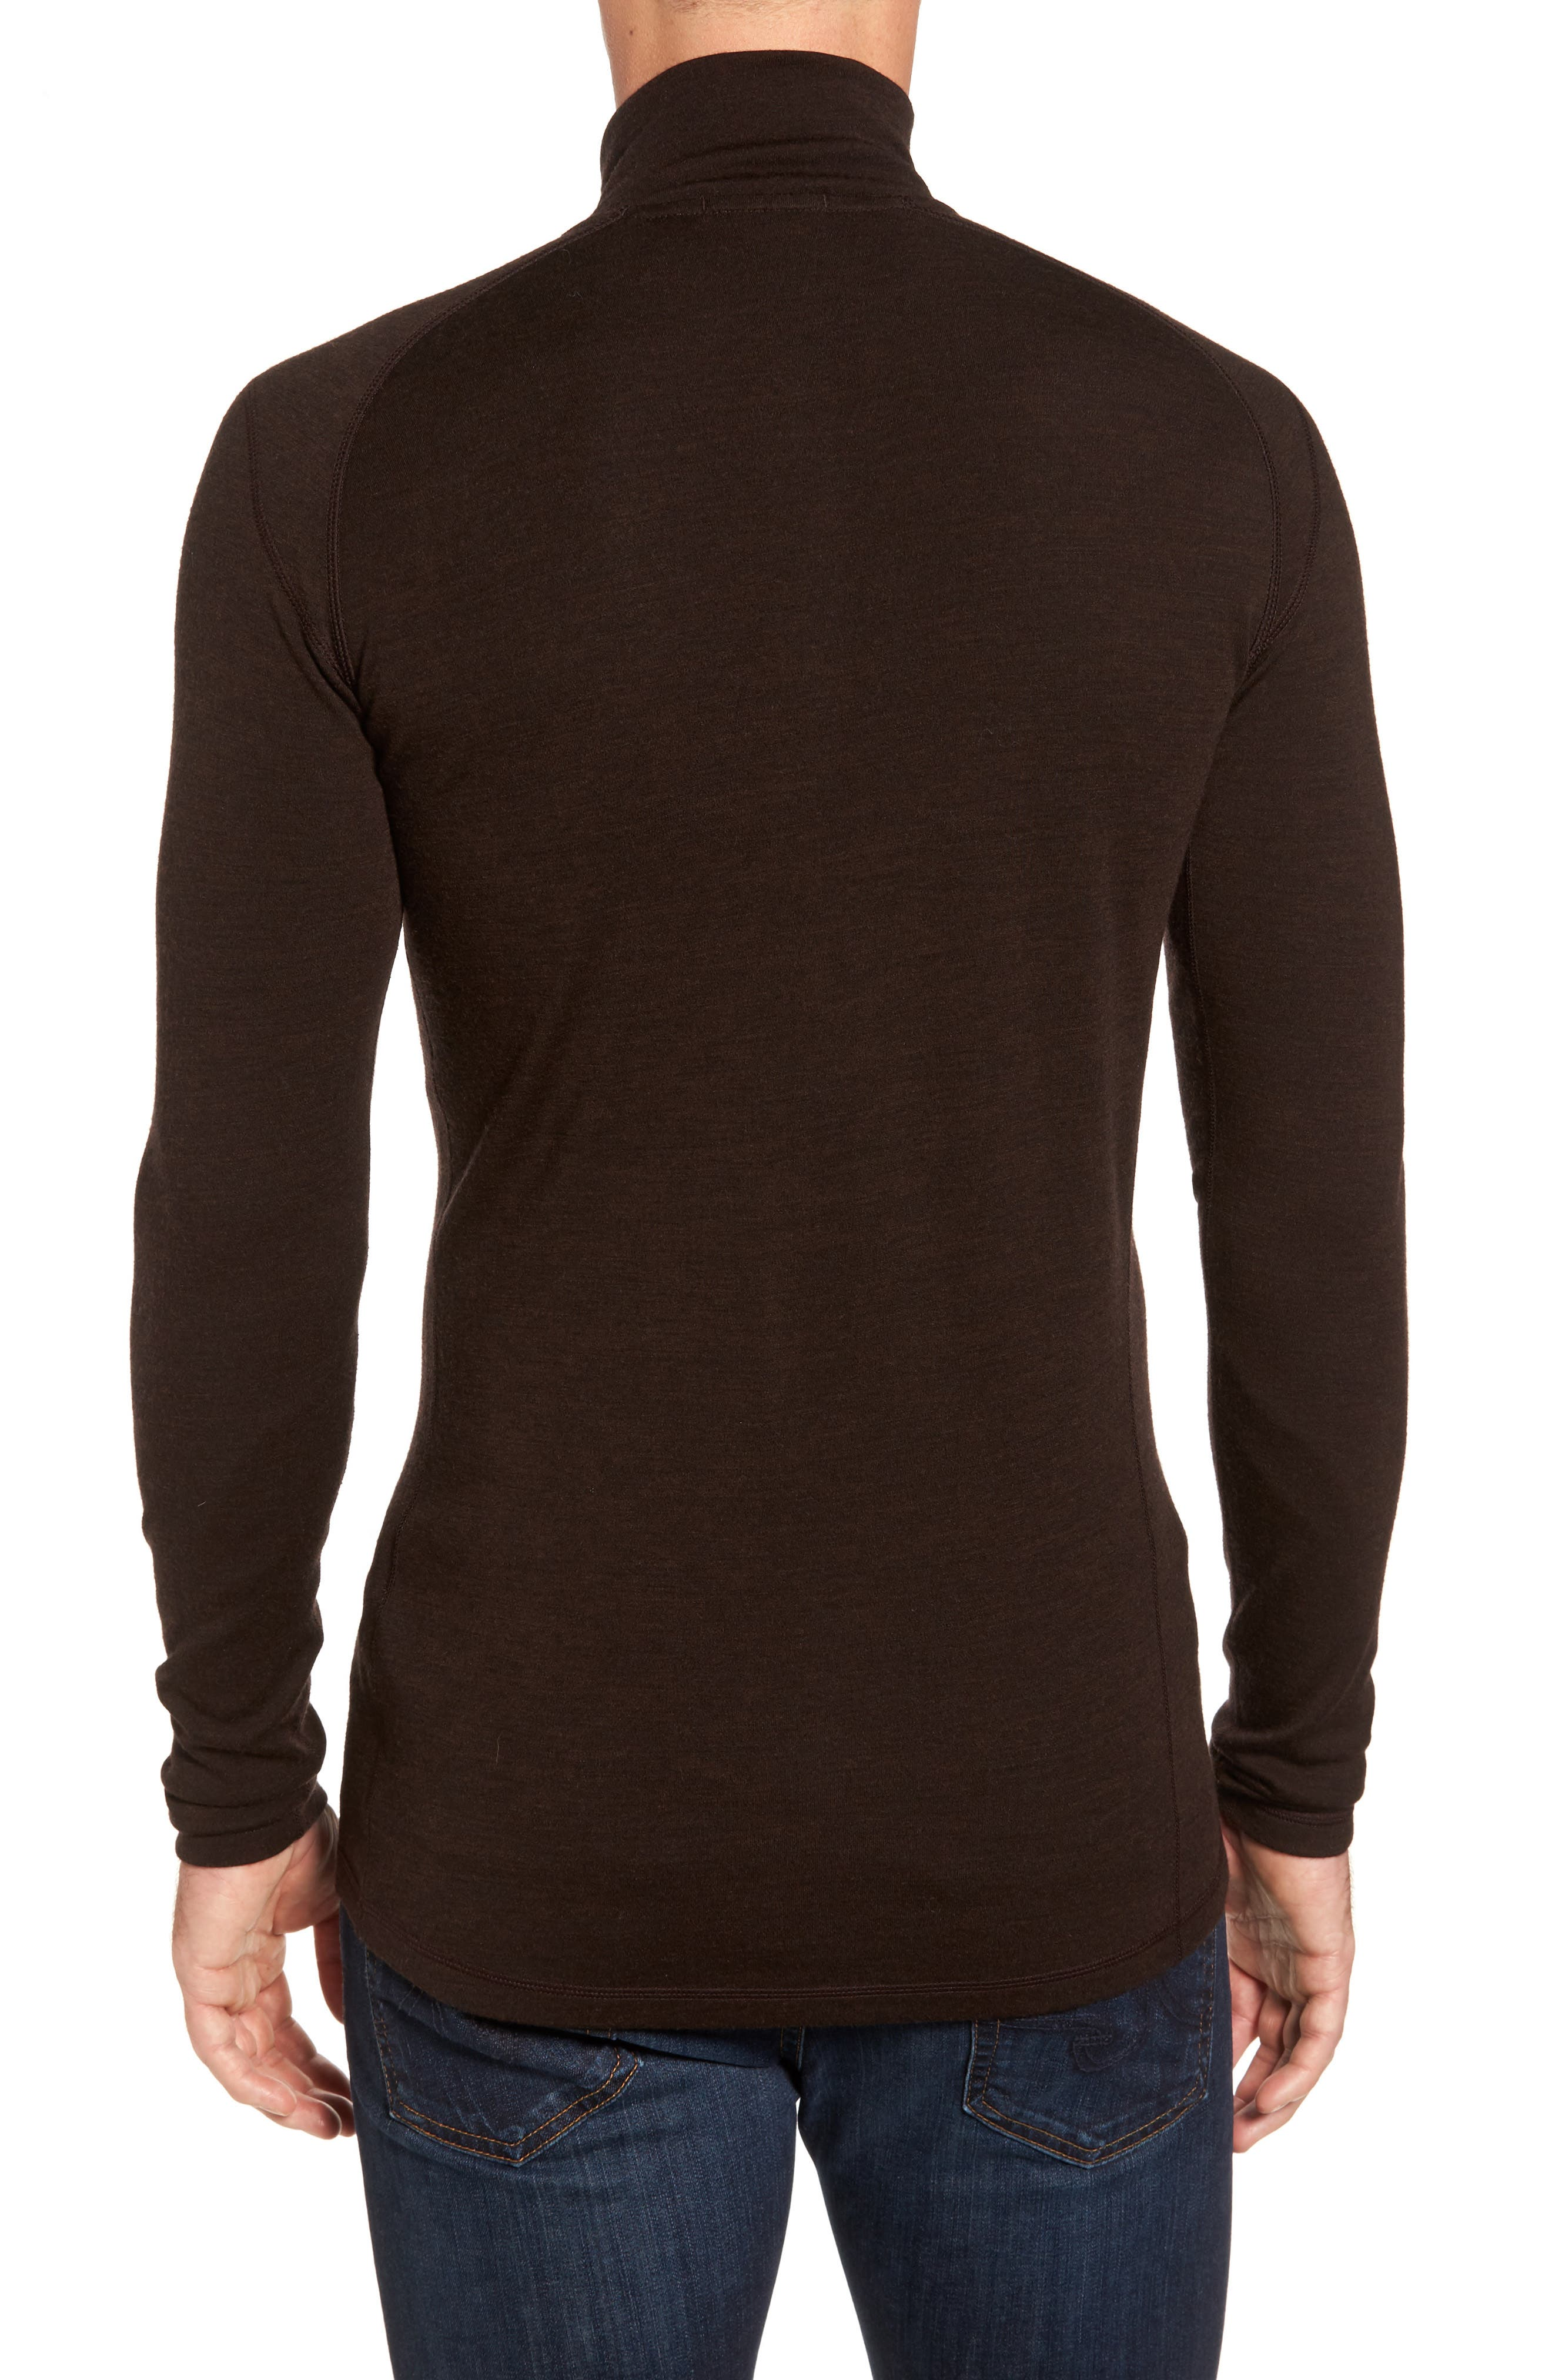 Alternate Image 2  - Smartwool Merino 250 Base Layer Quarter Zip Pullover